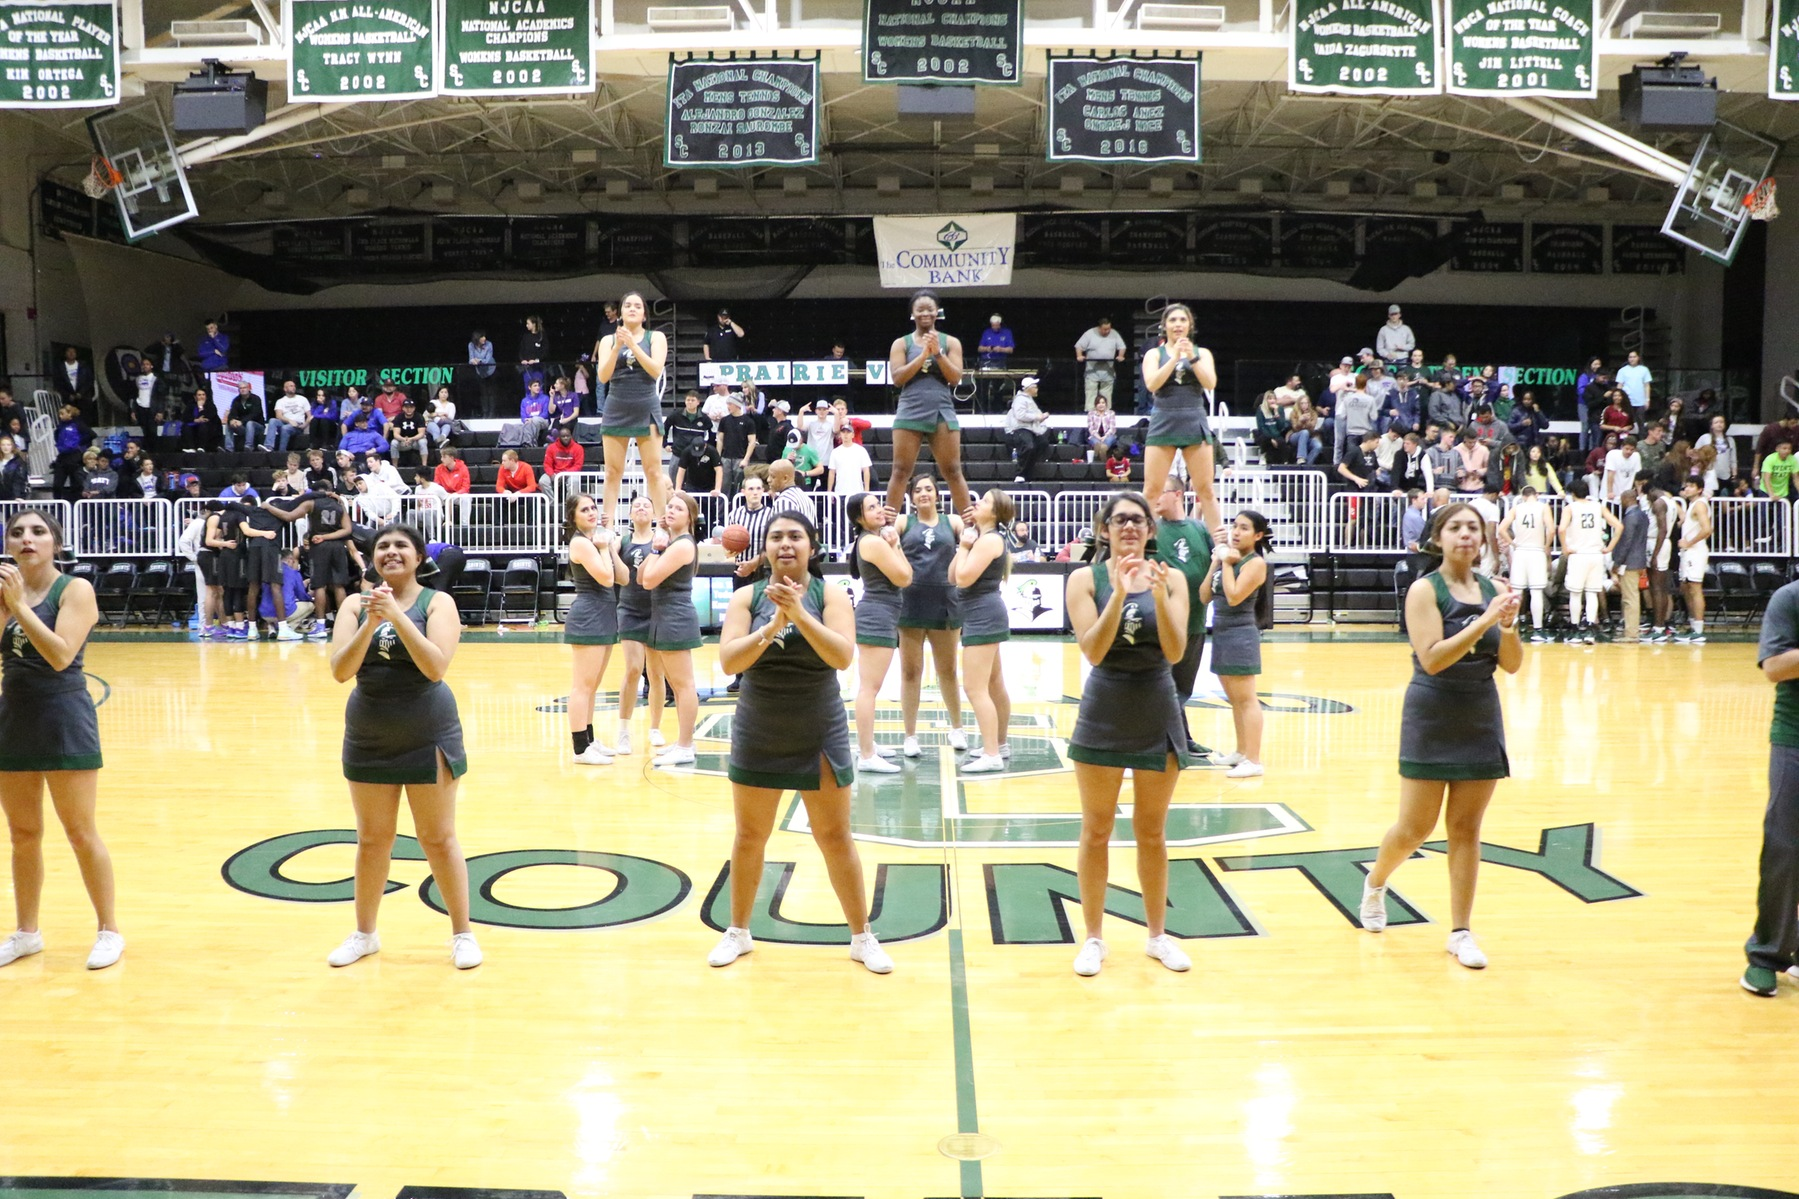 SCCC Set to Compete in Cheer Competition